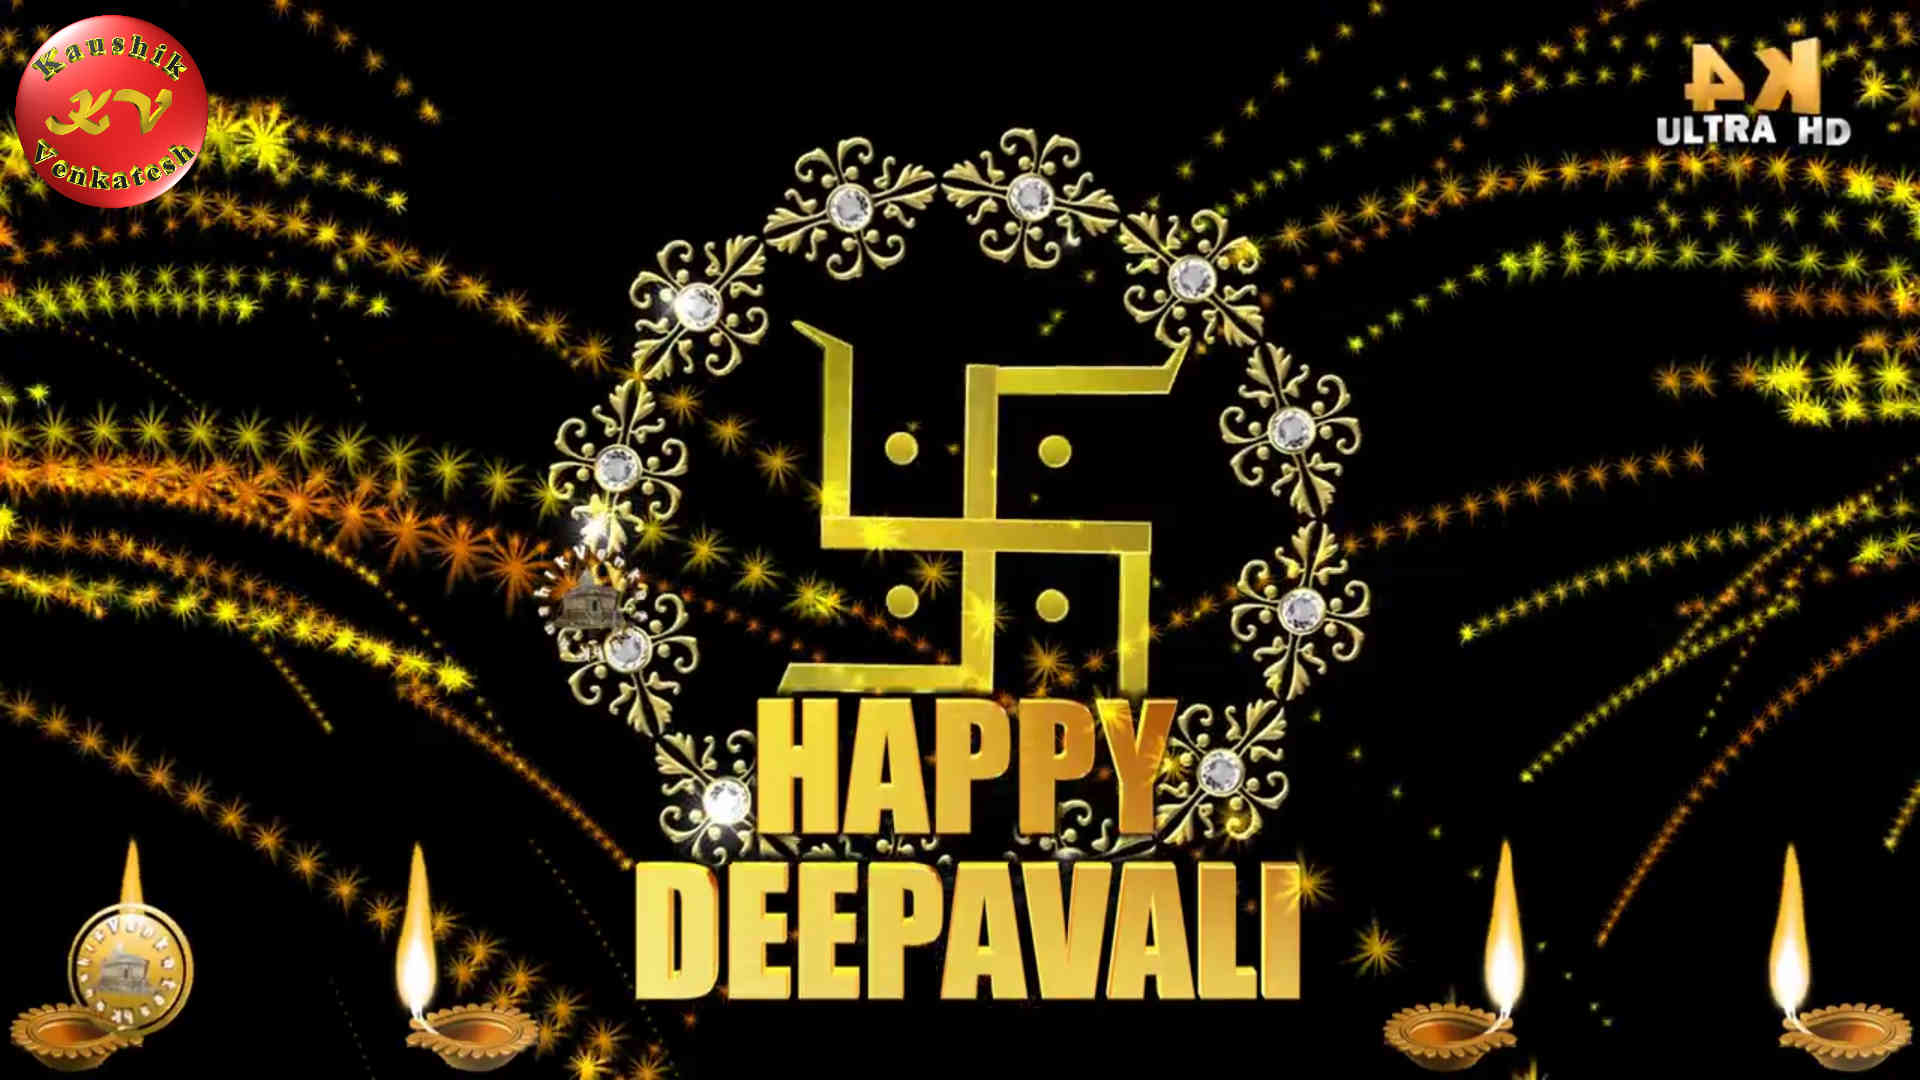 Deepavali Wishes Images